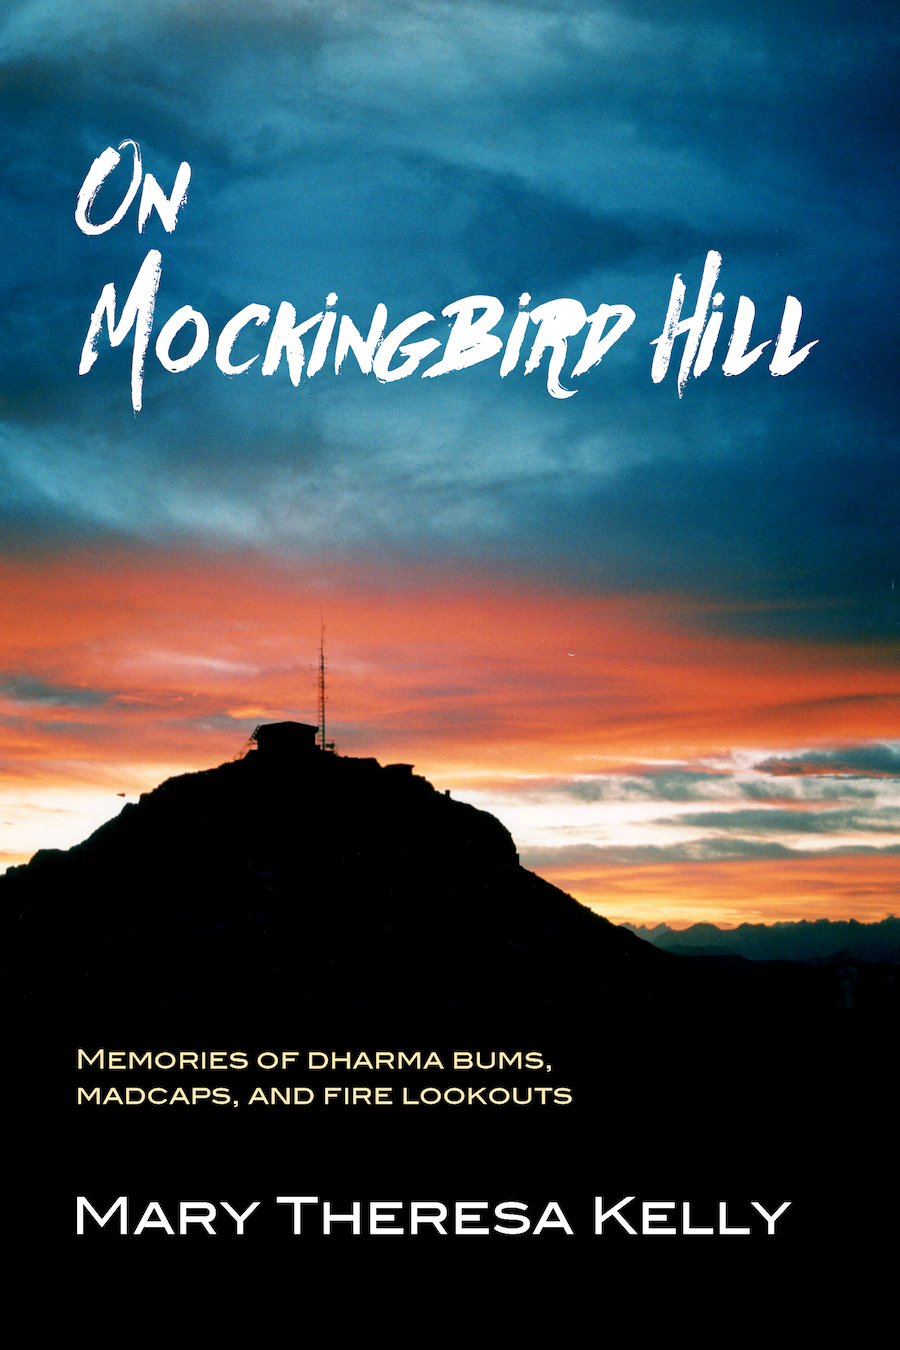 On Mockingbird Hill